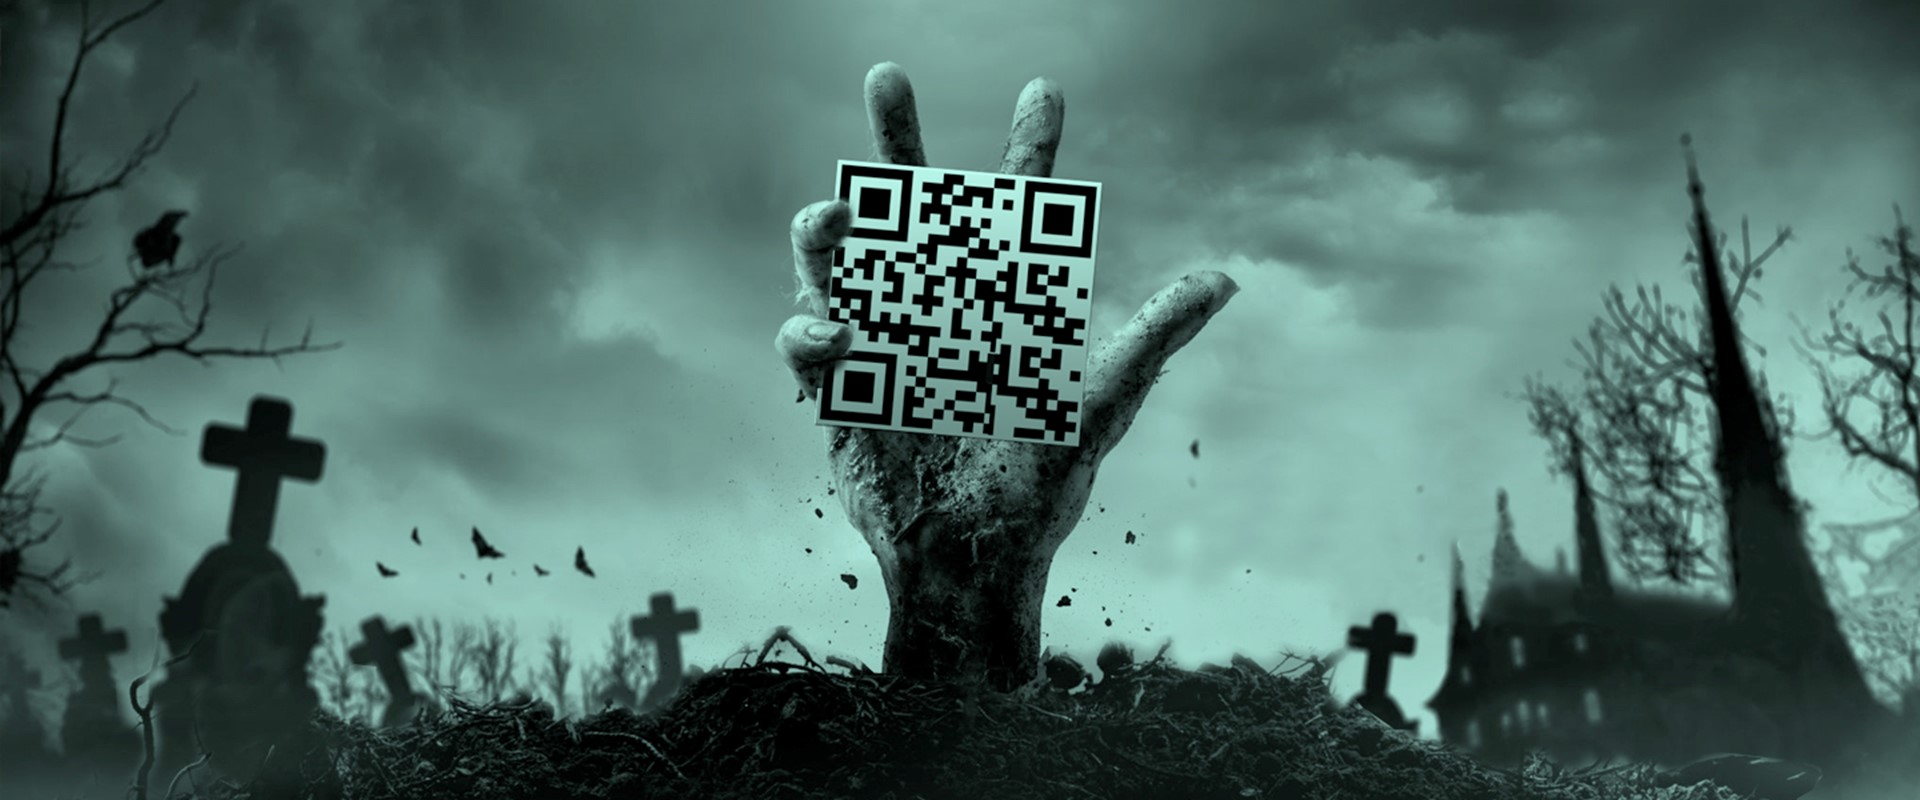 The QR code resurrection